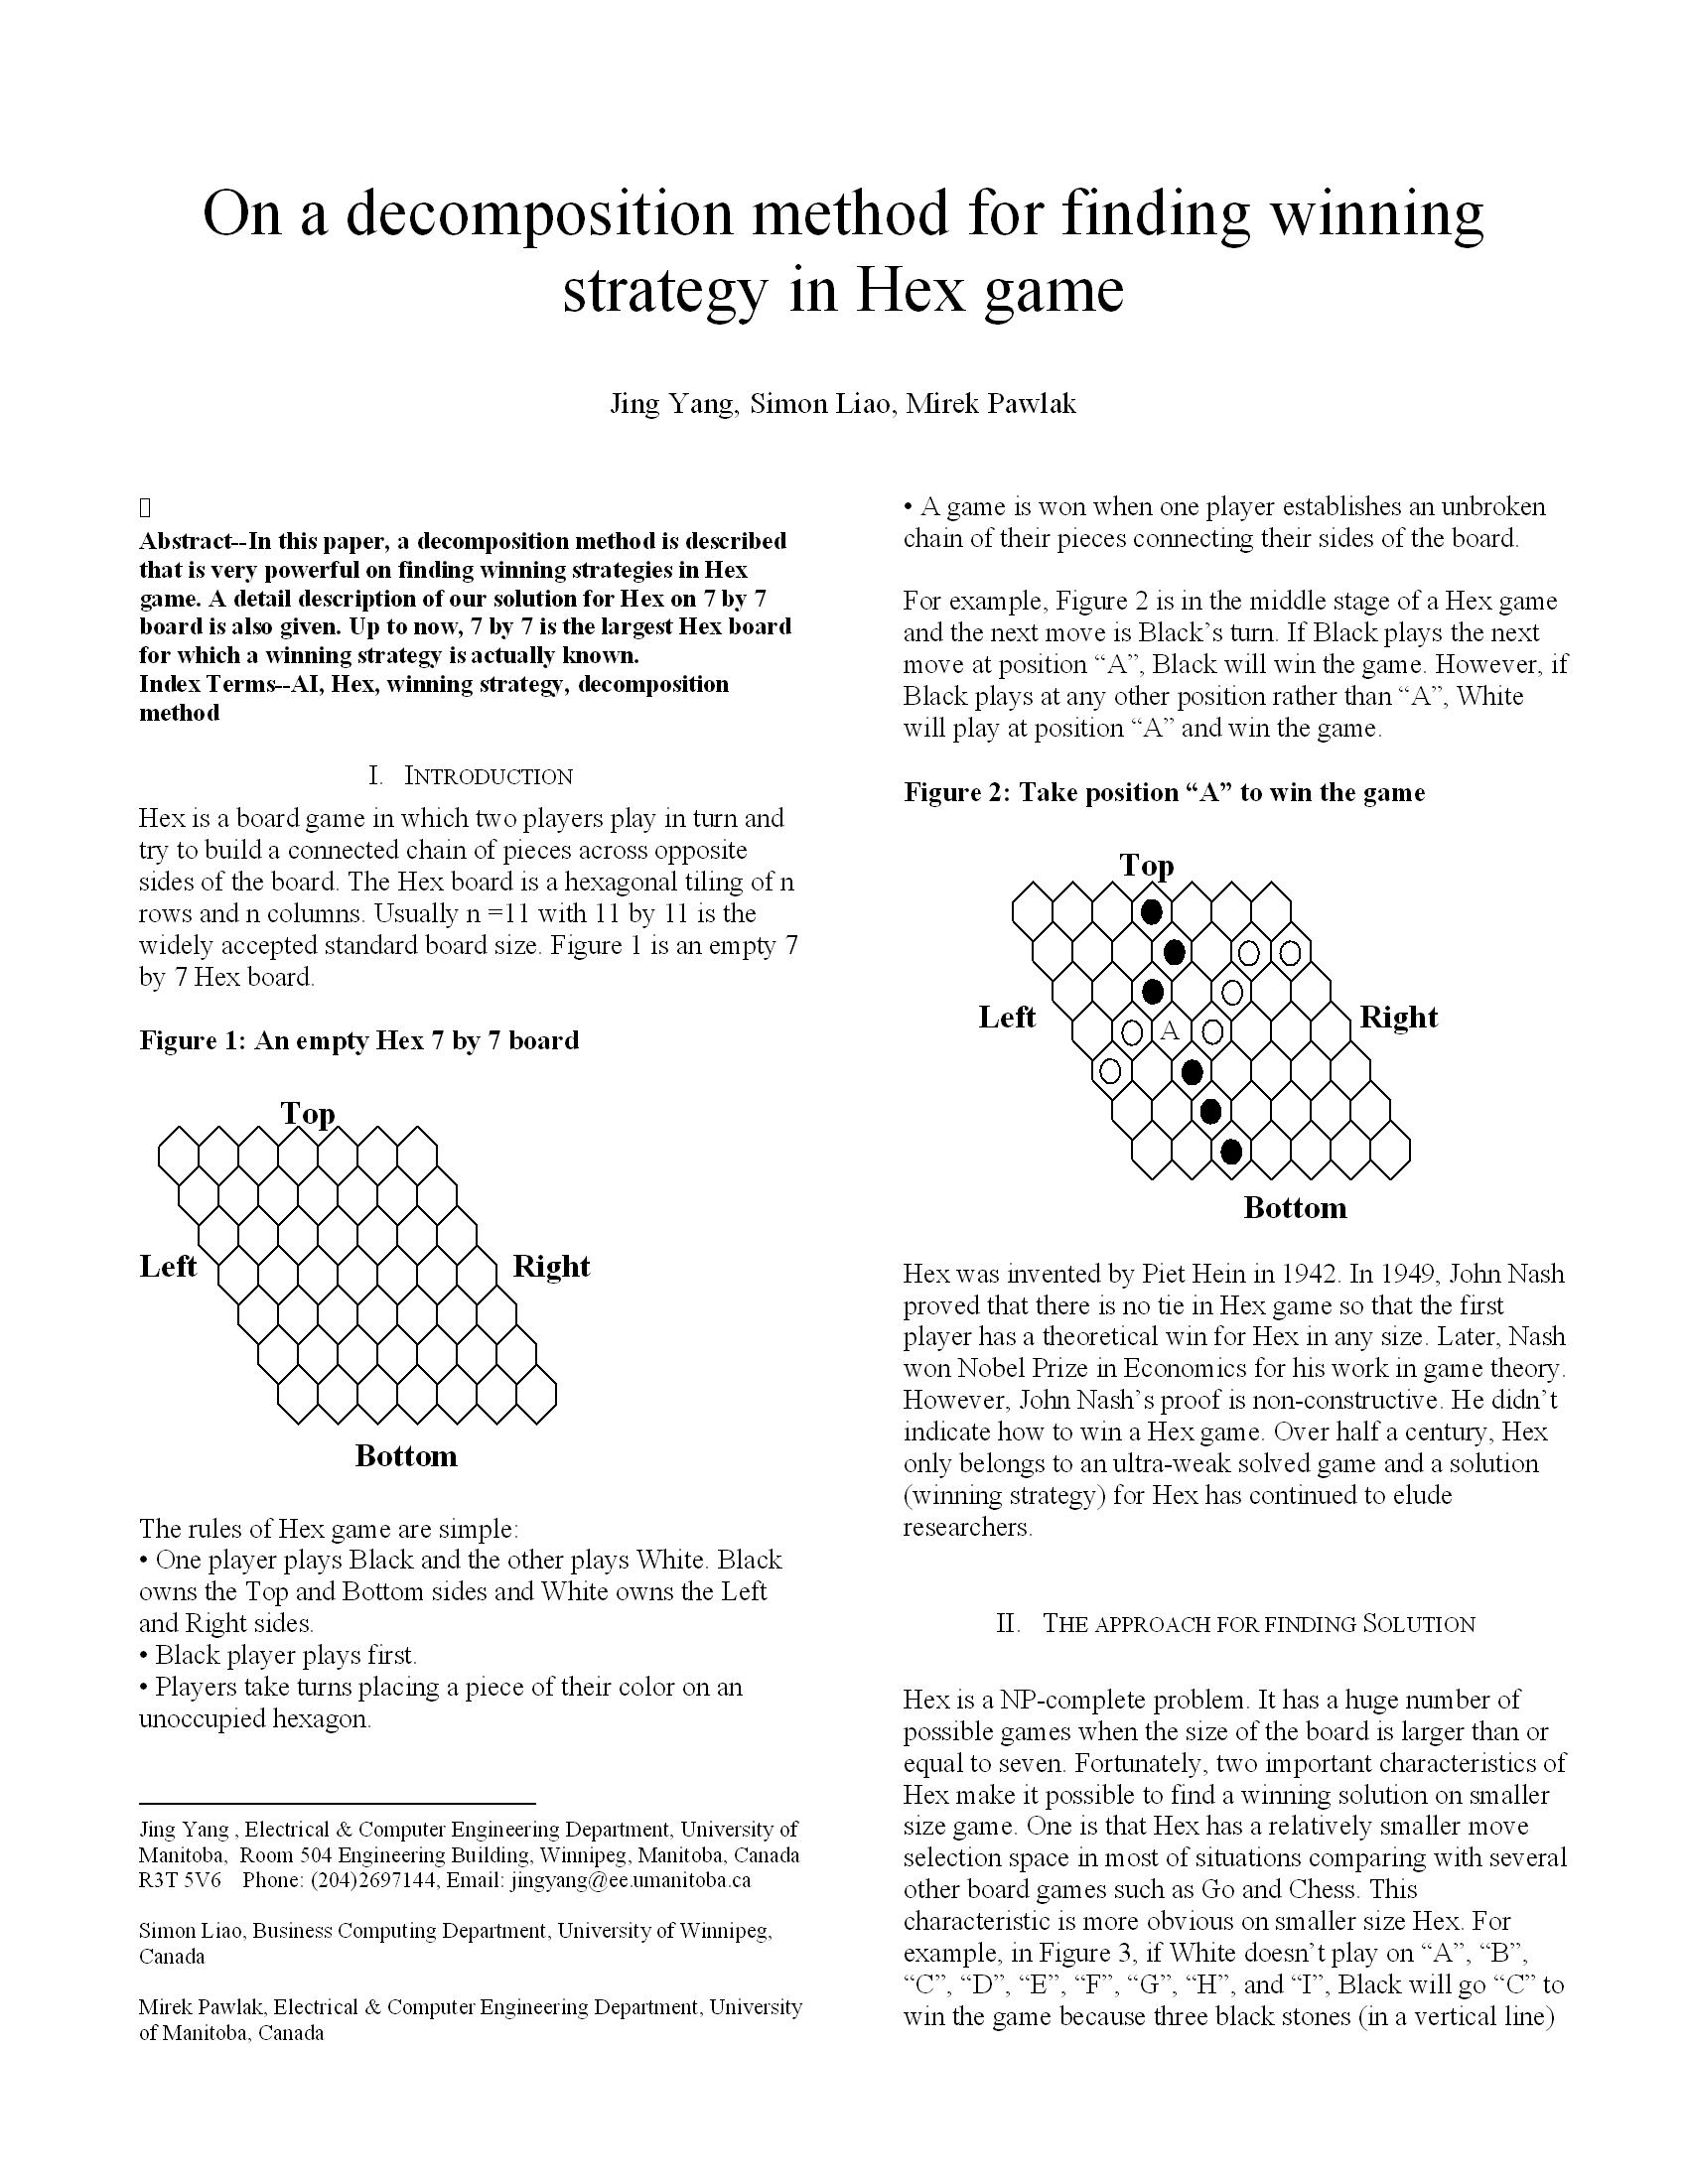 On a decomposition method for finding winning strategy in Hex game 16